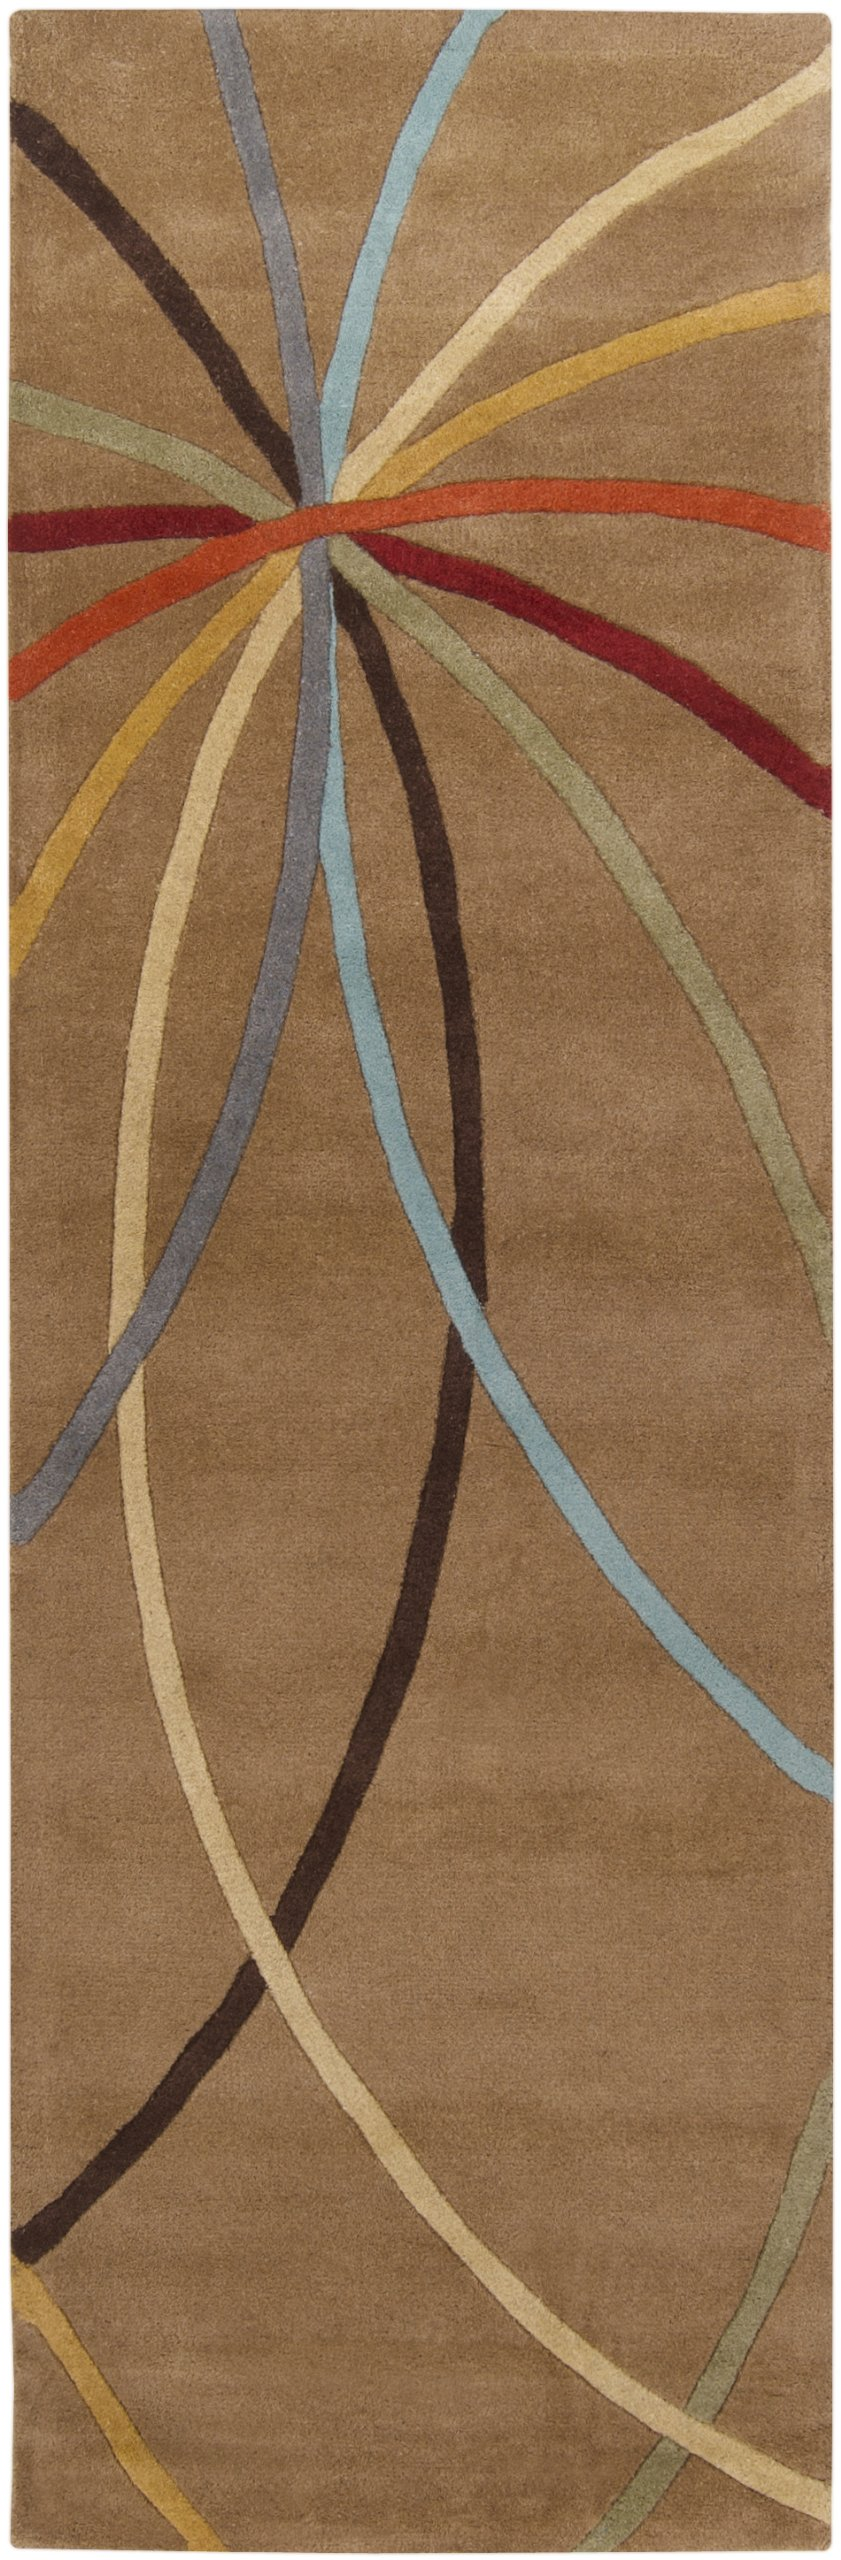 Surya Forum FM-7140 Contemporary Hand Tufted 100% Wool Driftwood Brown 2'6'' x 8' Abstract Runner